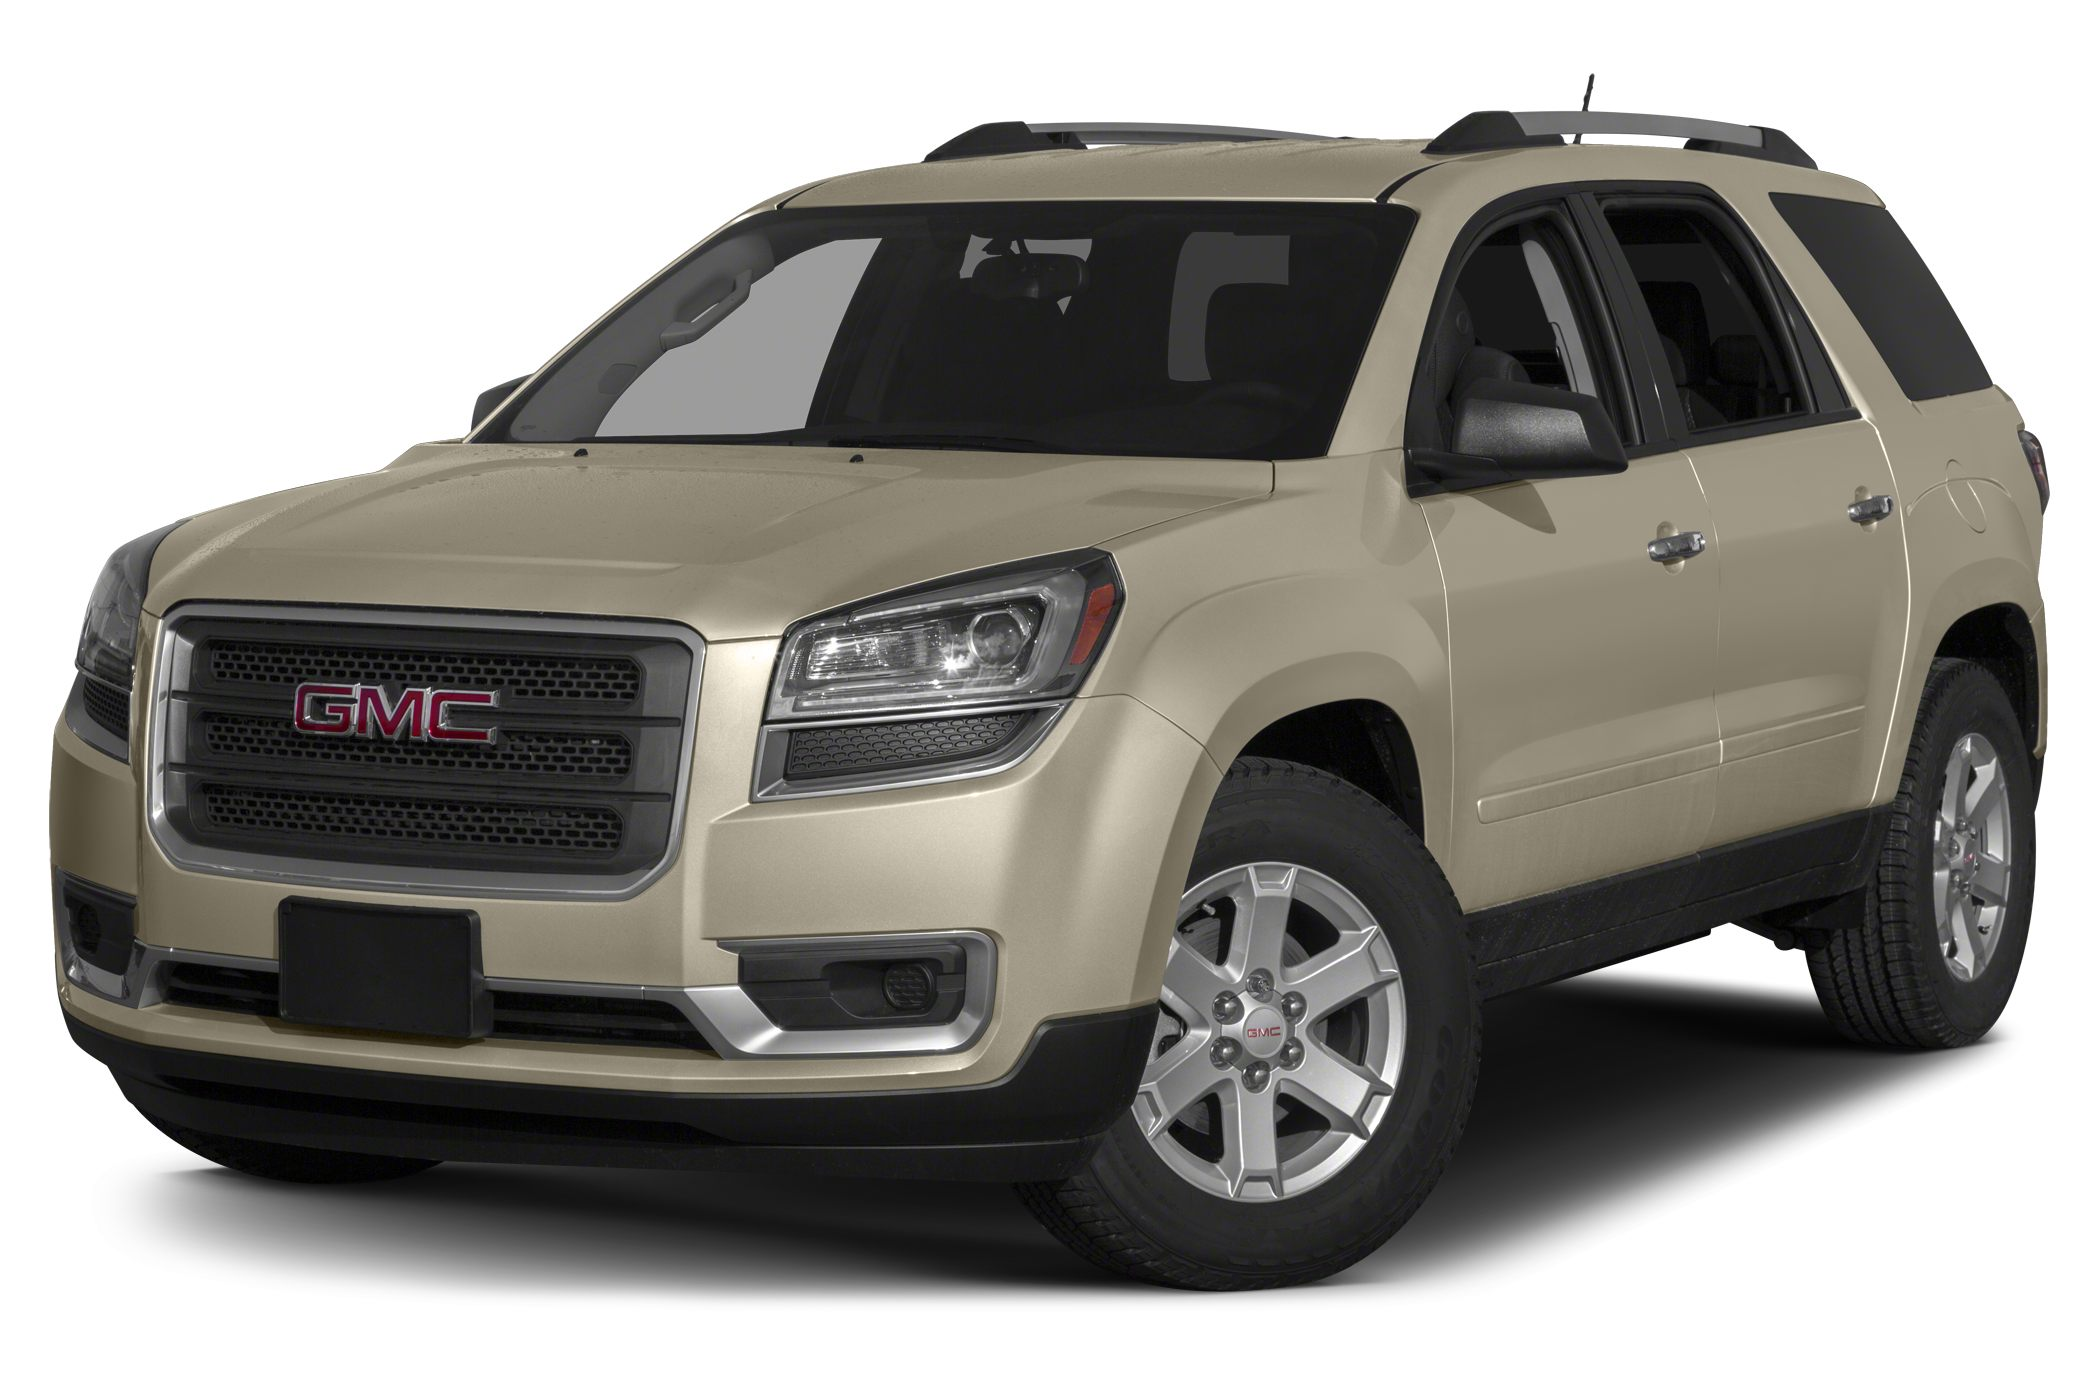 2015 GMC Acadia SLT-1 SUV for sale in Victoria for $45,280 with 0 miles.